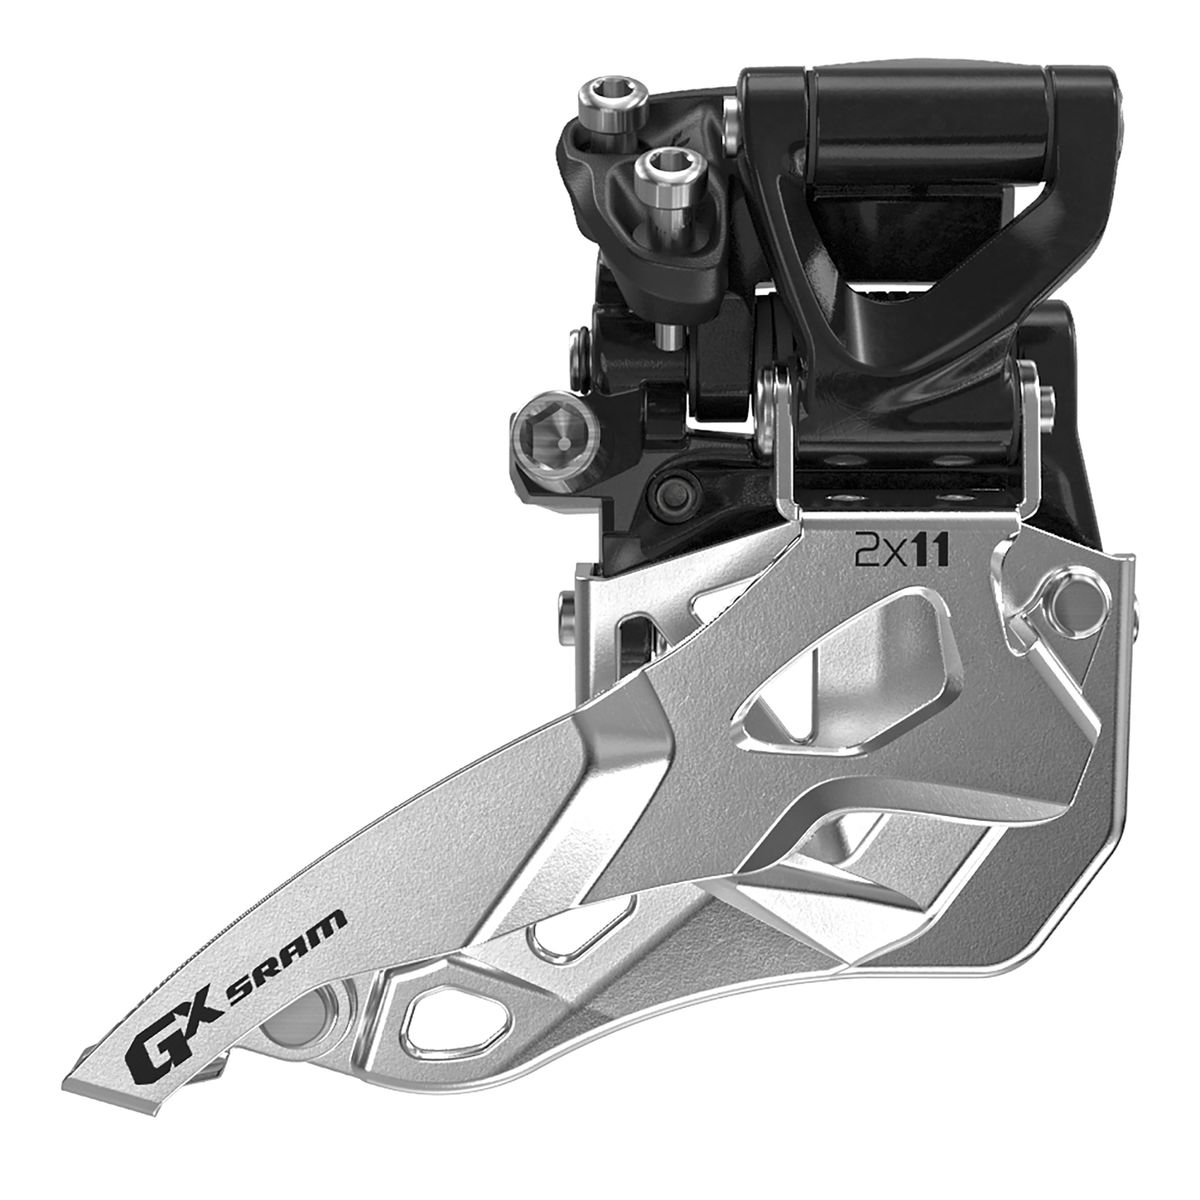 GX 2 x 11 High clamp MTB front derailleur